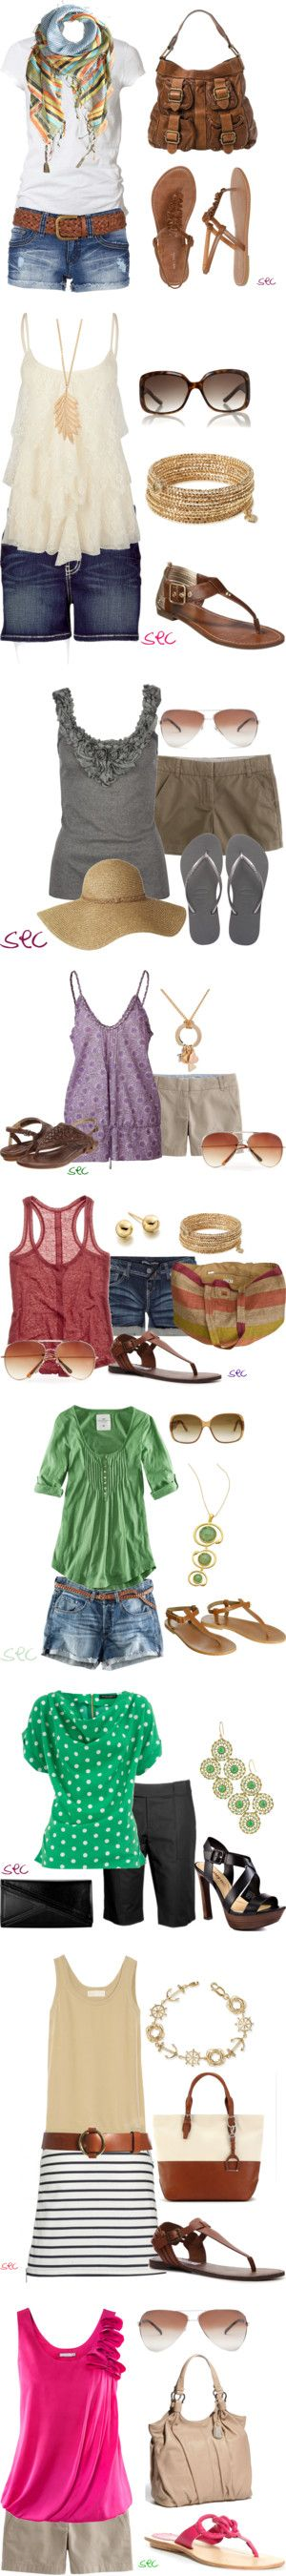 Summer Looks.. ♥ them all!